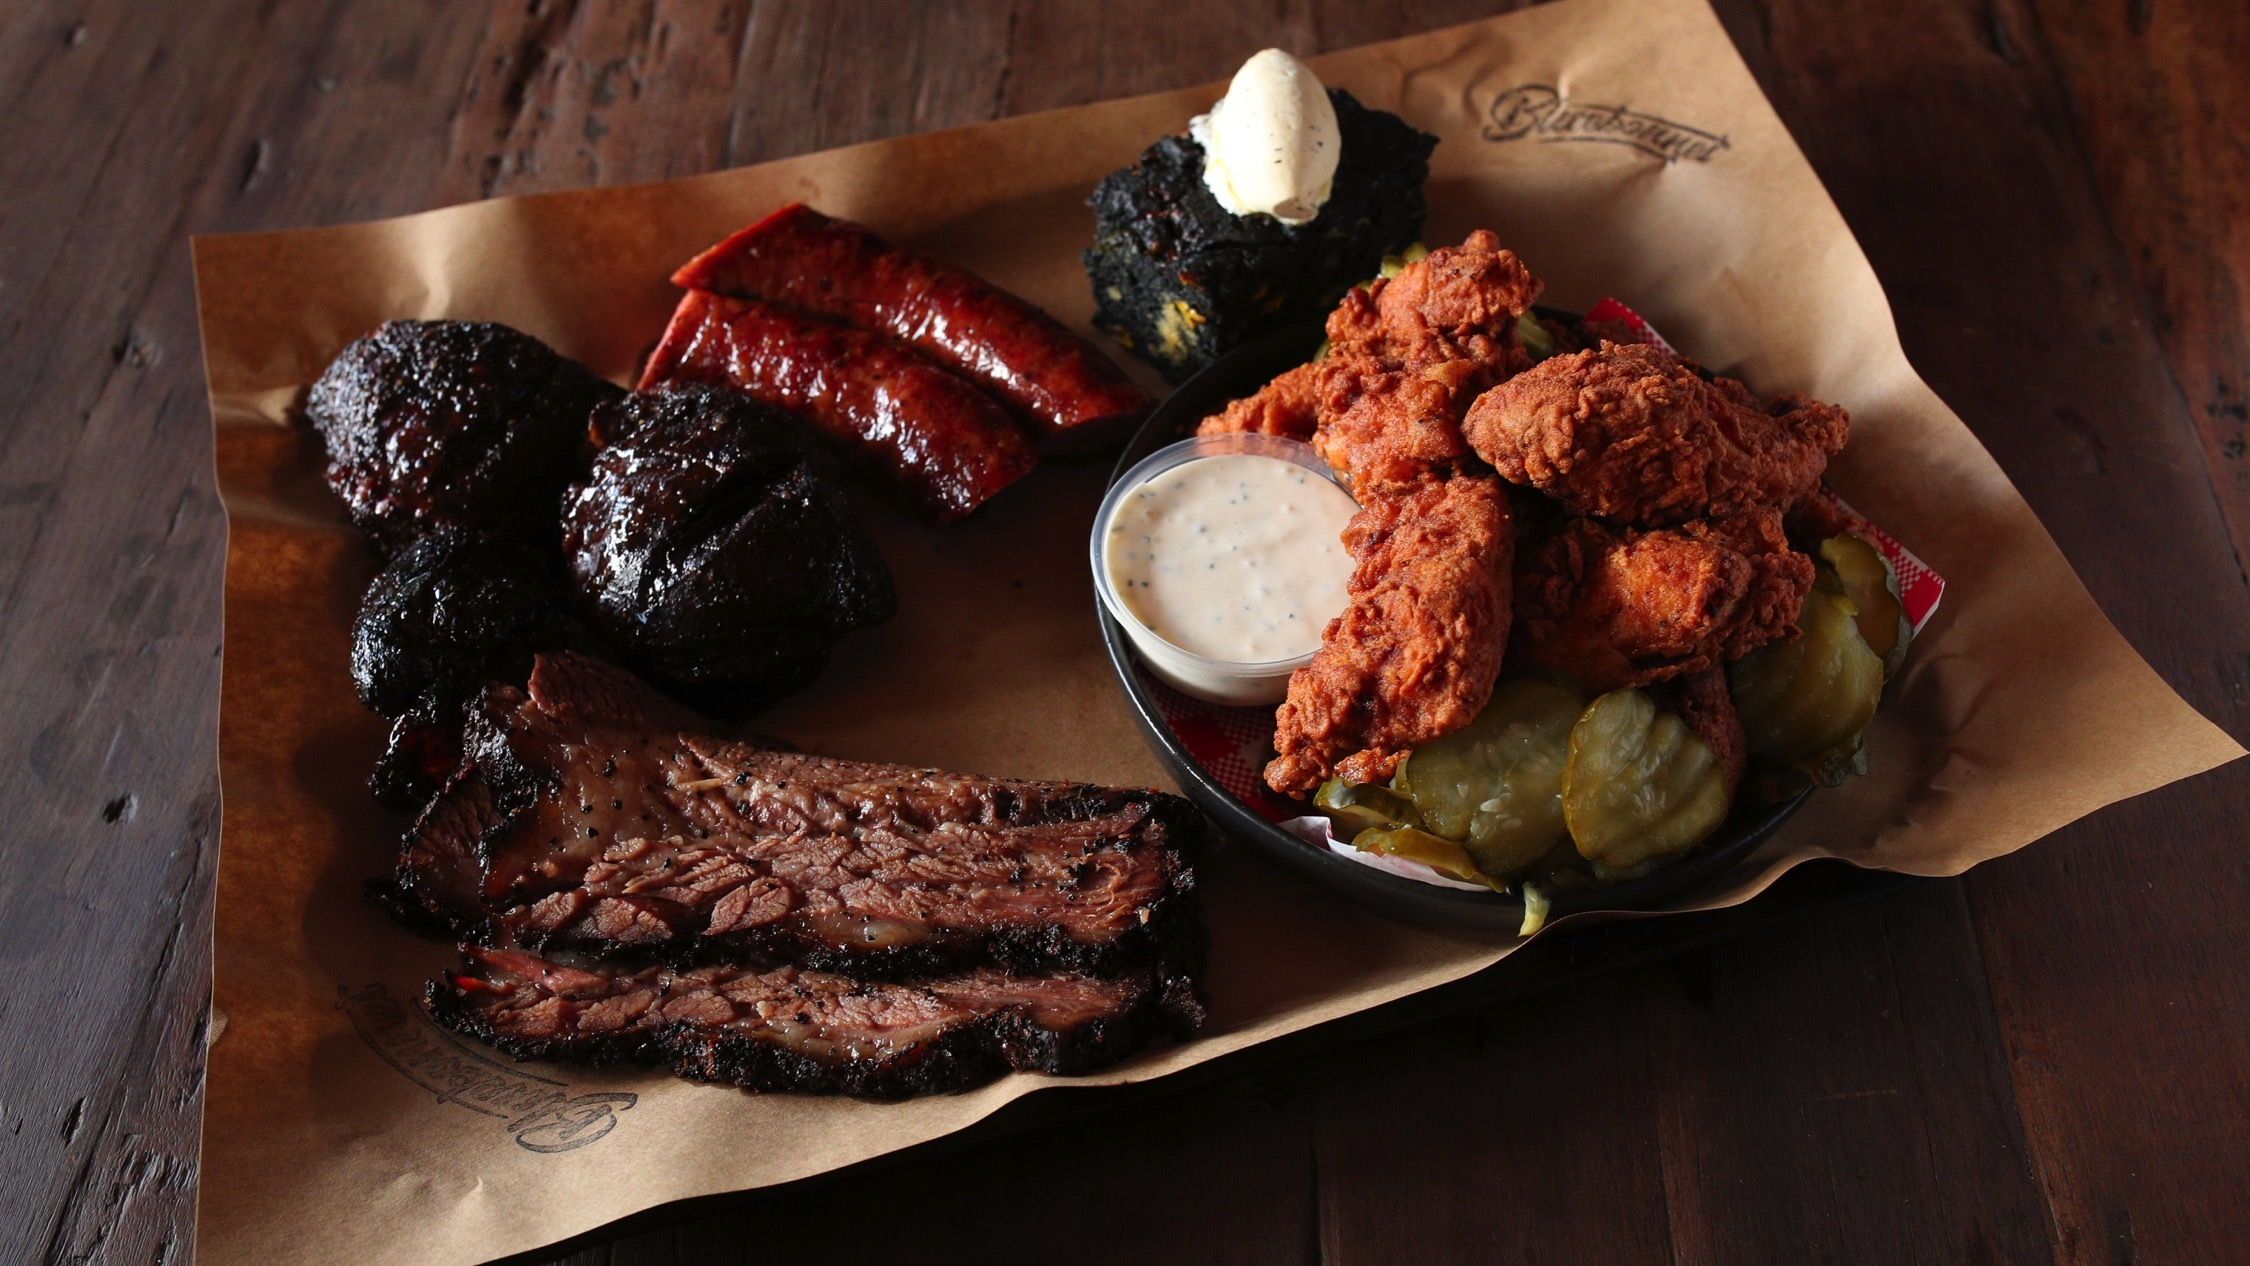 Bluebonnet is doing three weeks of unlimited barbecue